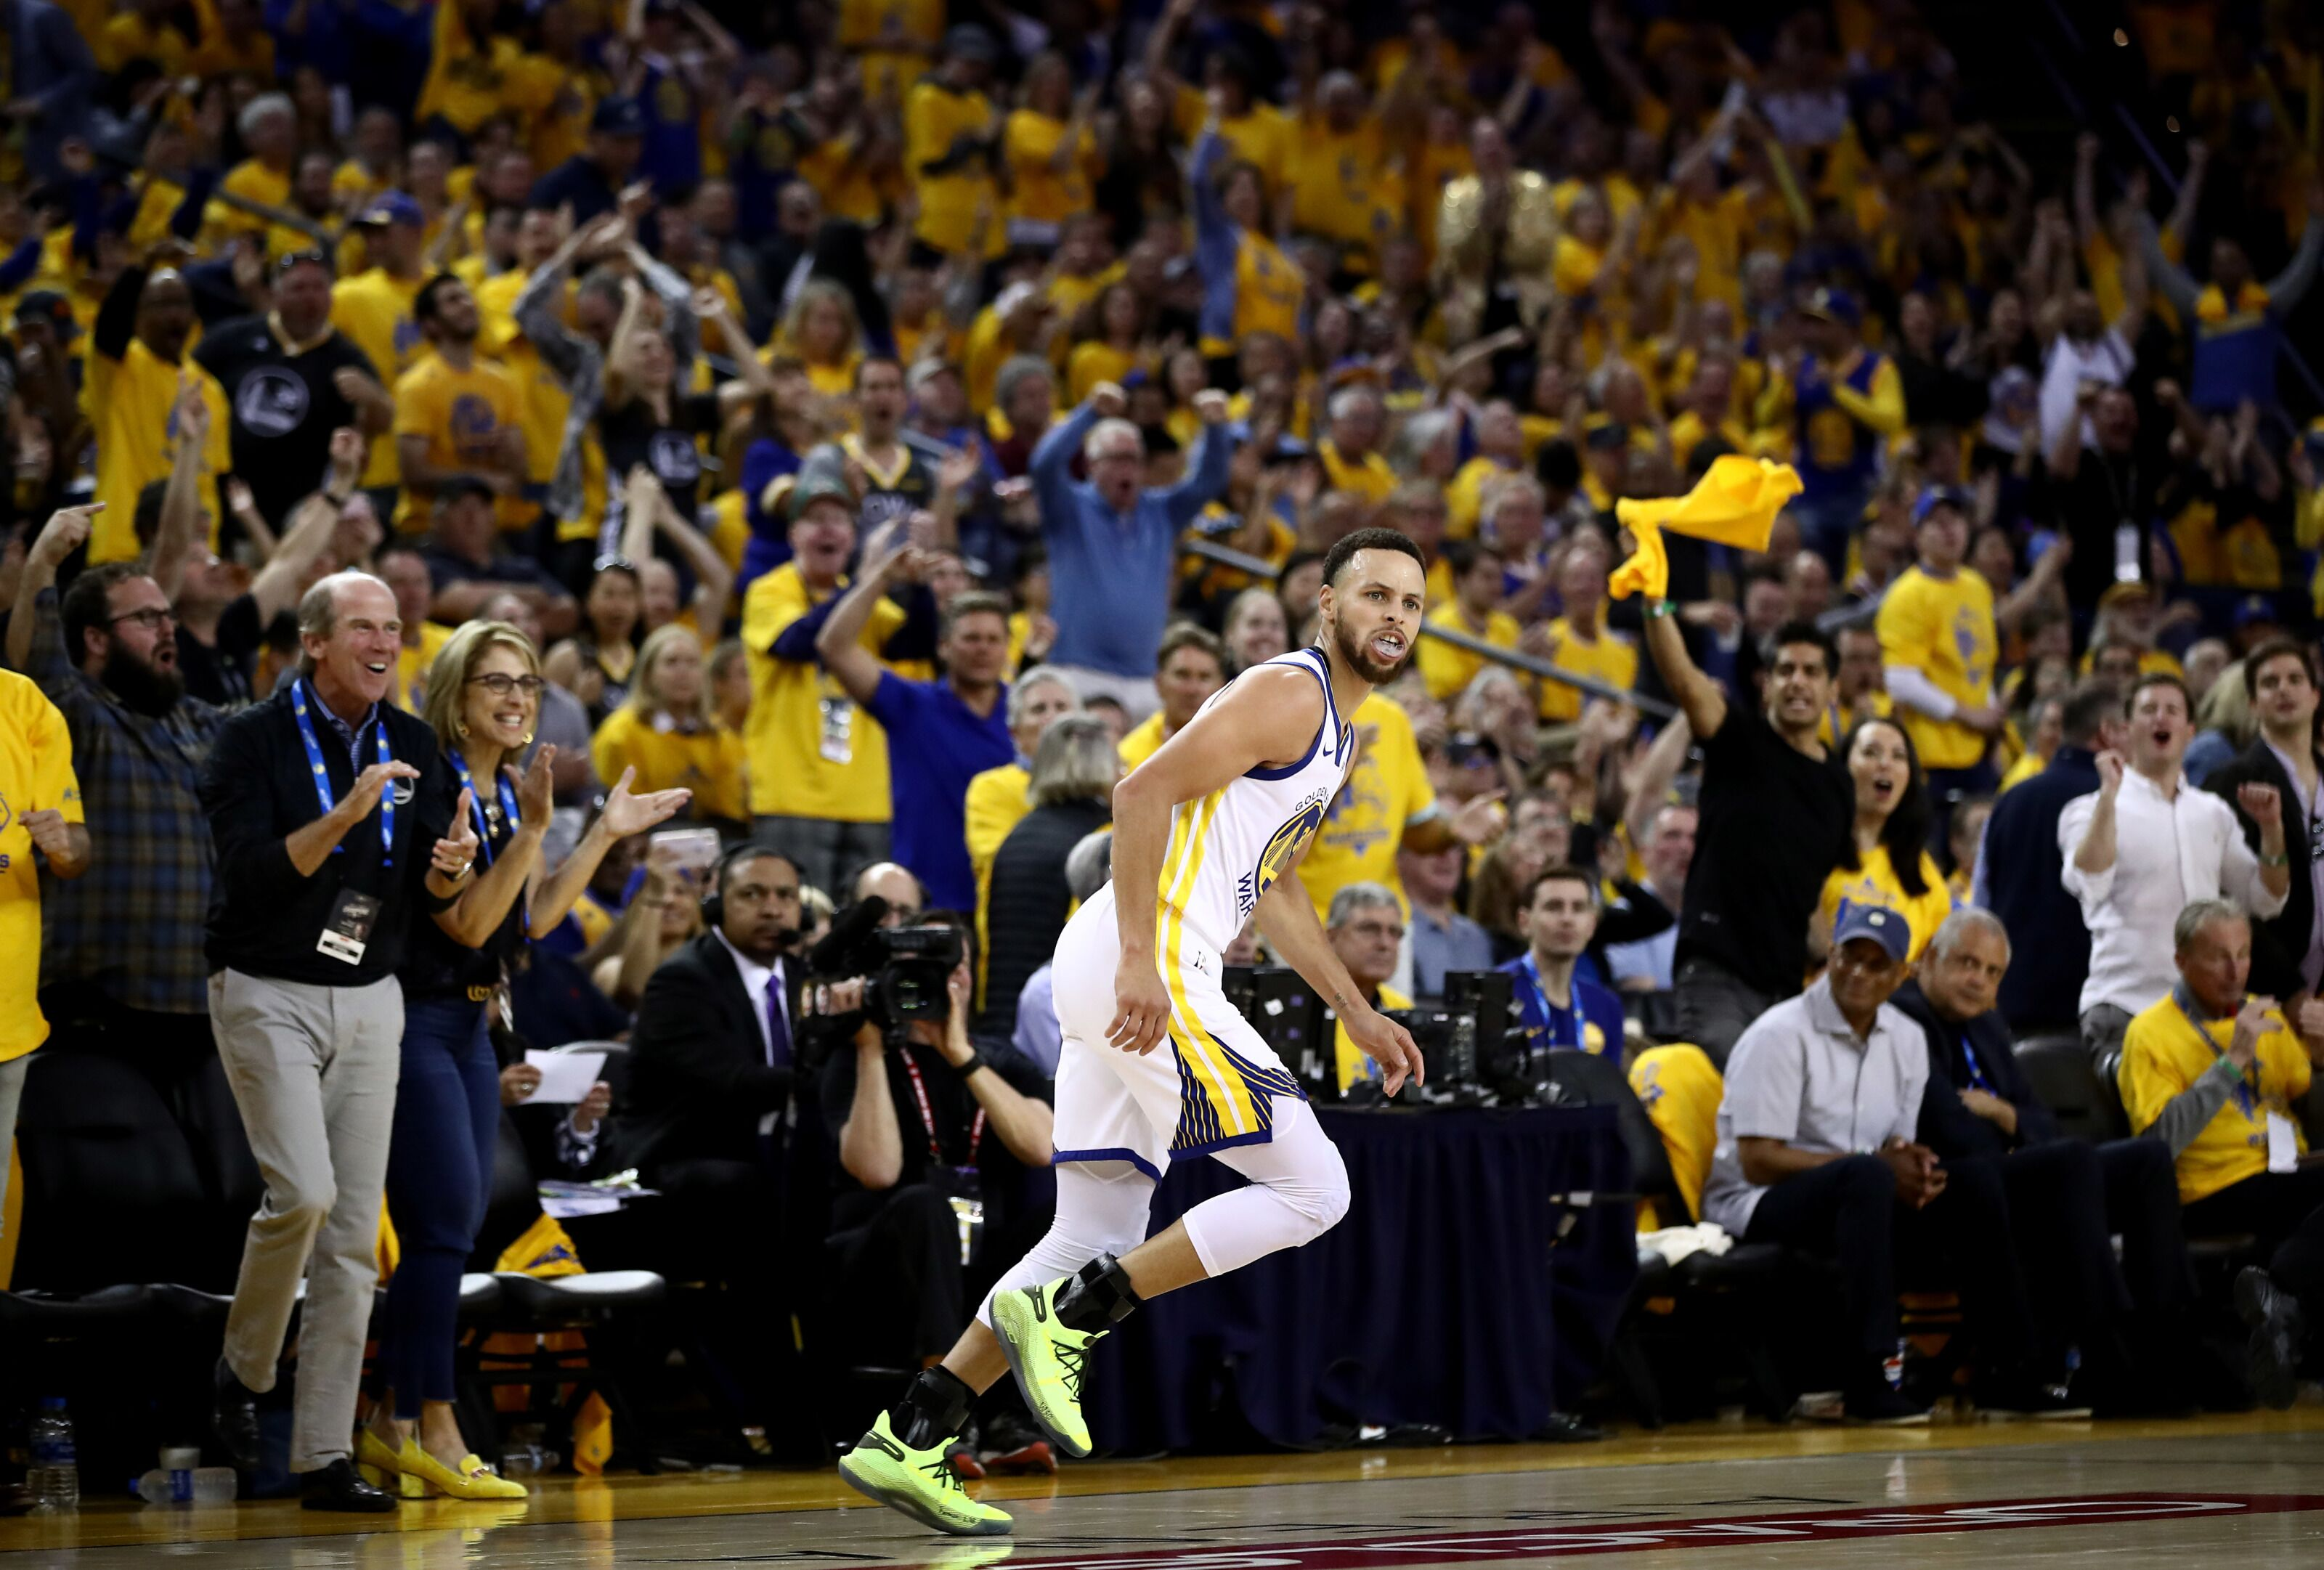 OAKLAND, CALIFORNIA - APRIL 13: Stephen Curry #30 of the Golden State Warriors runs back down court after making a basket against the LA Clippers during Game One of the first round of the 2019 NBA Western Conference Playoffs at ORACLE Arena on April 13, 2019 in Oakland, California. NOTE TO USER: User expressly acknowledges and agrees that, by downloading and or using this photograph, User is consenting to the terms and conditions of the Getty Images License Agreement. (Photo by Ezra Shaw/Getty Images)